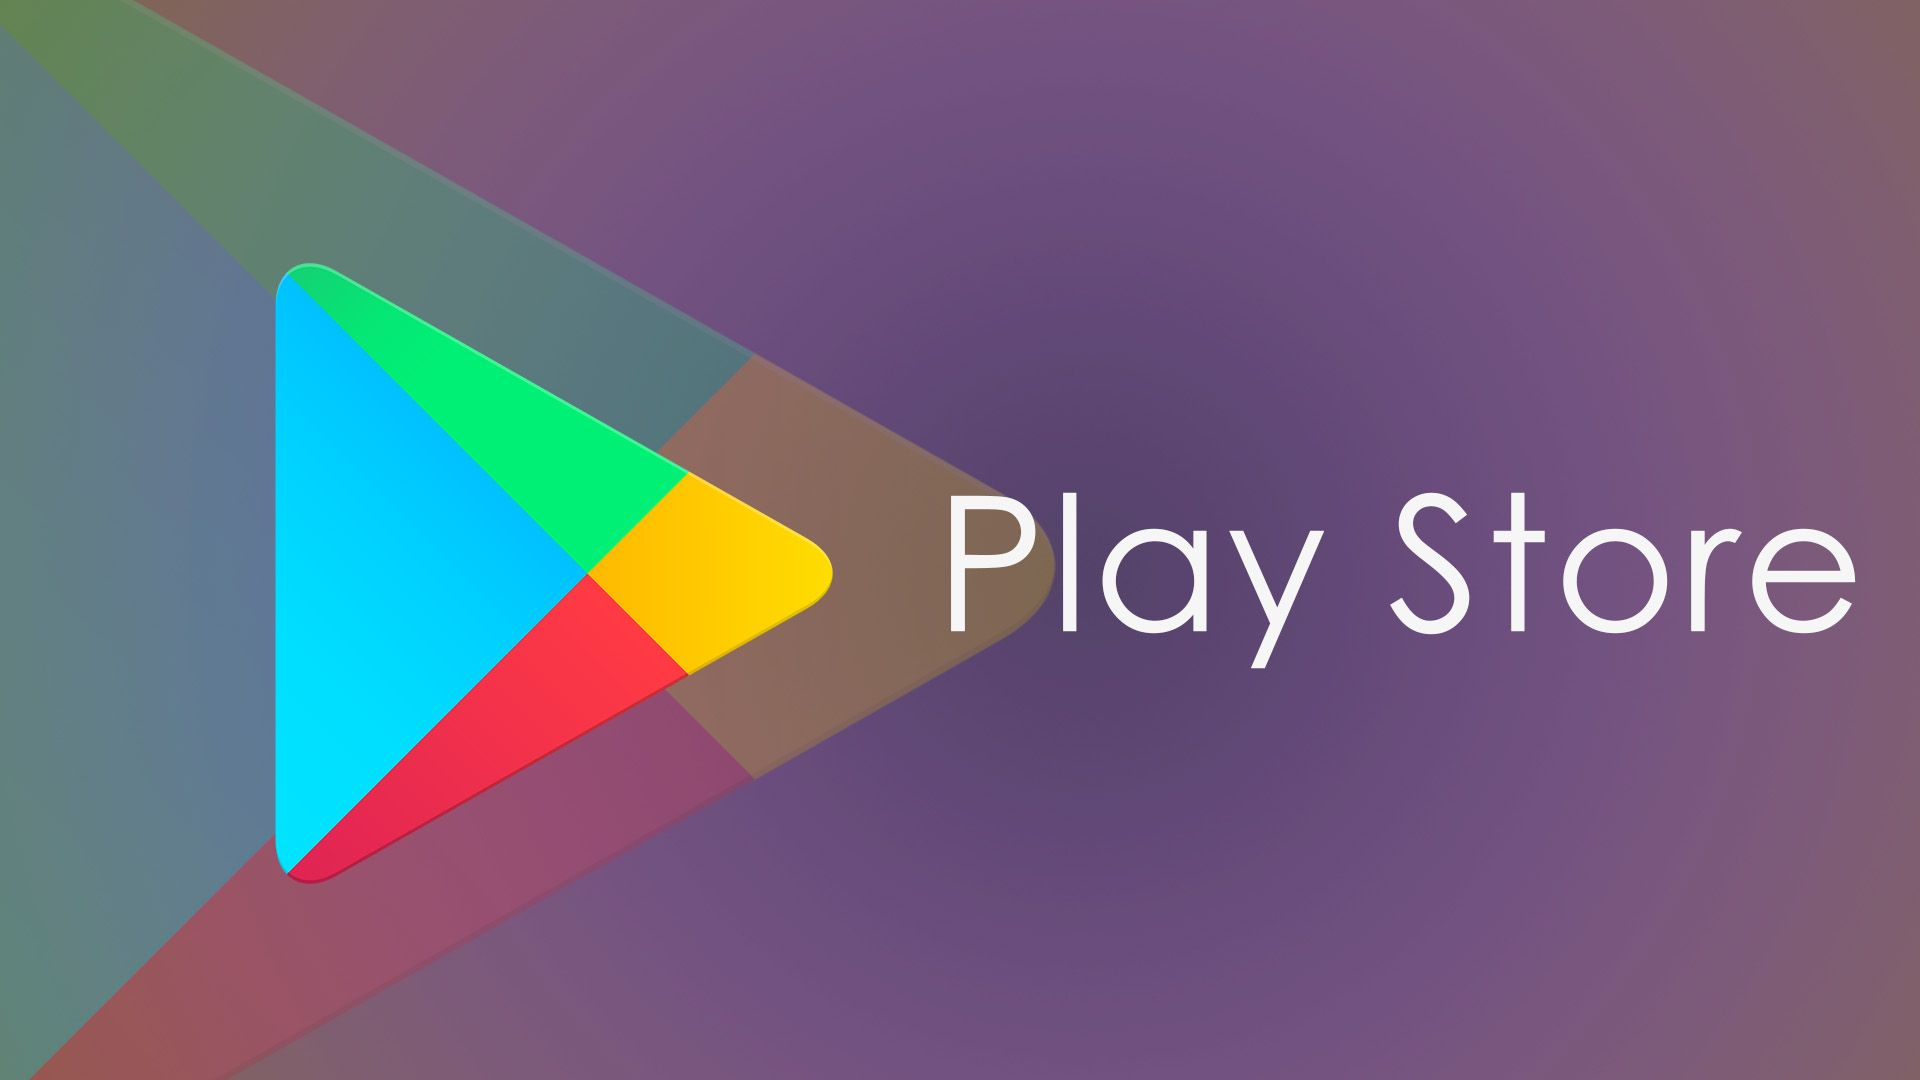 Google Play Store redesign underworks, colorless elements